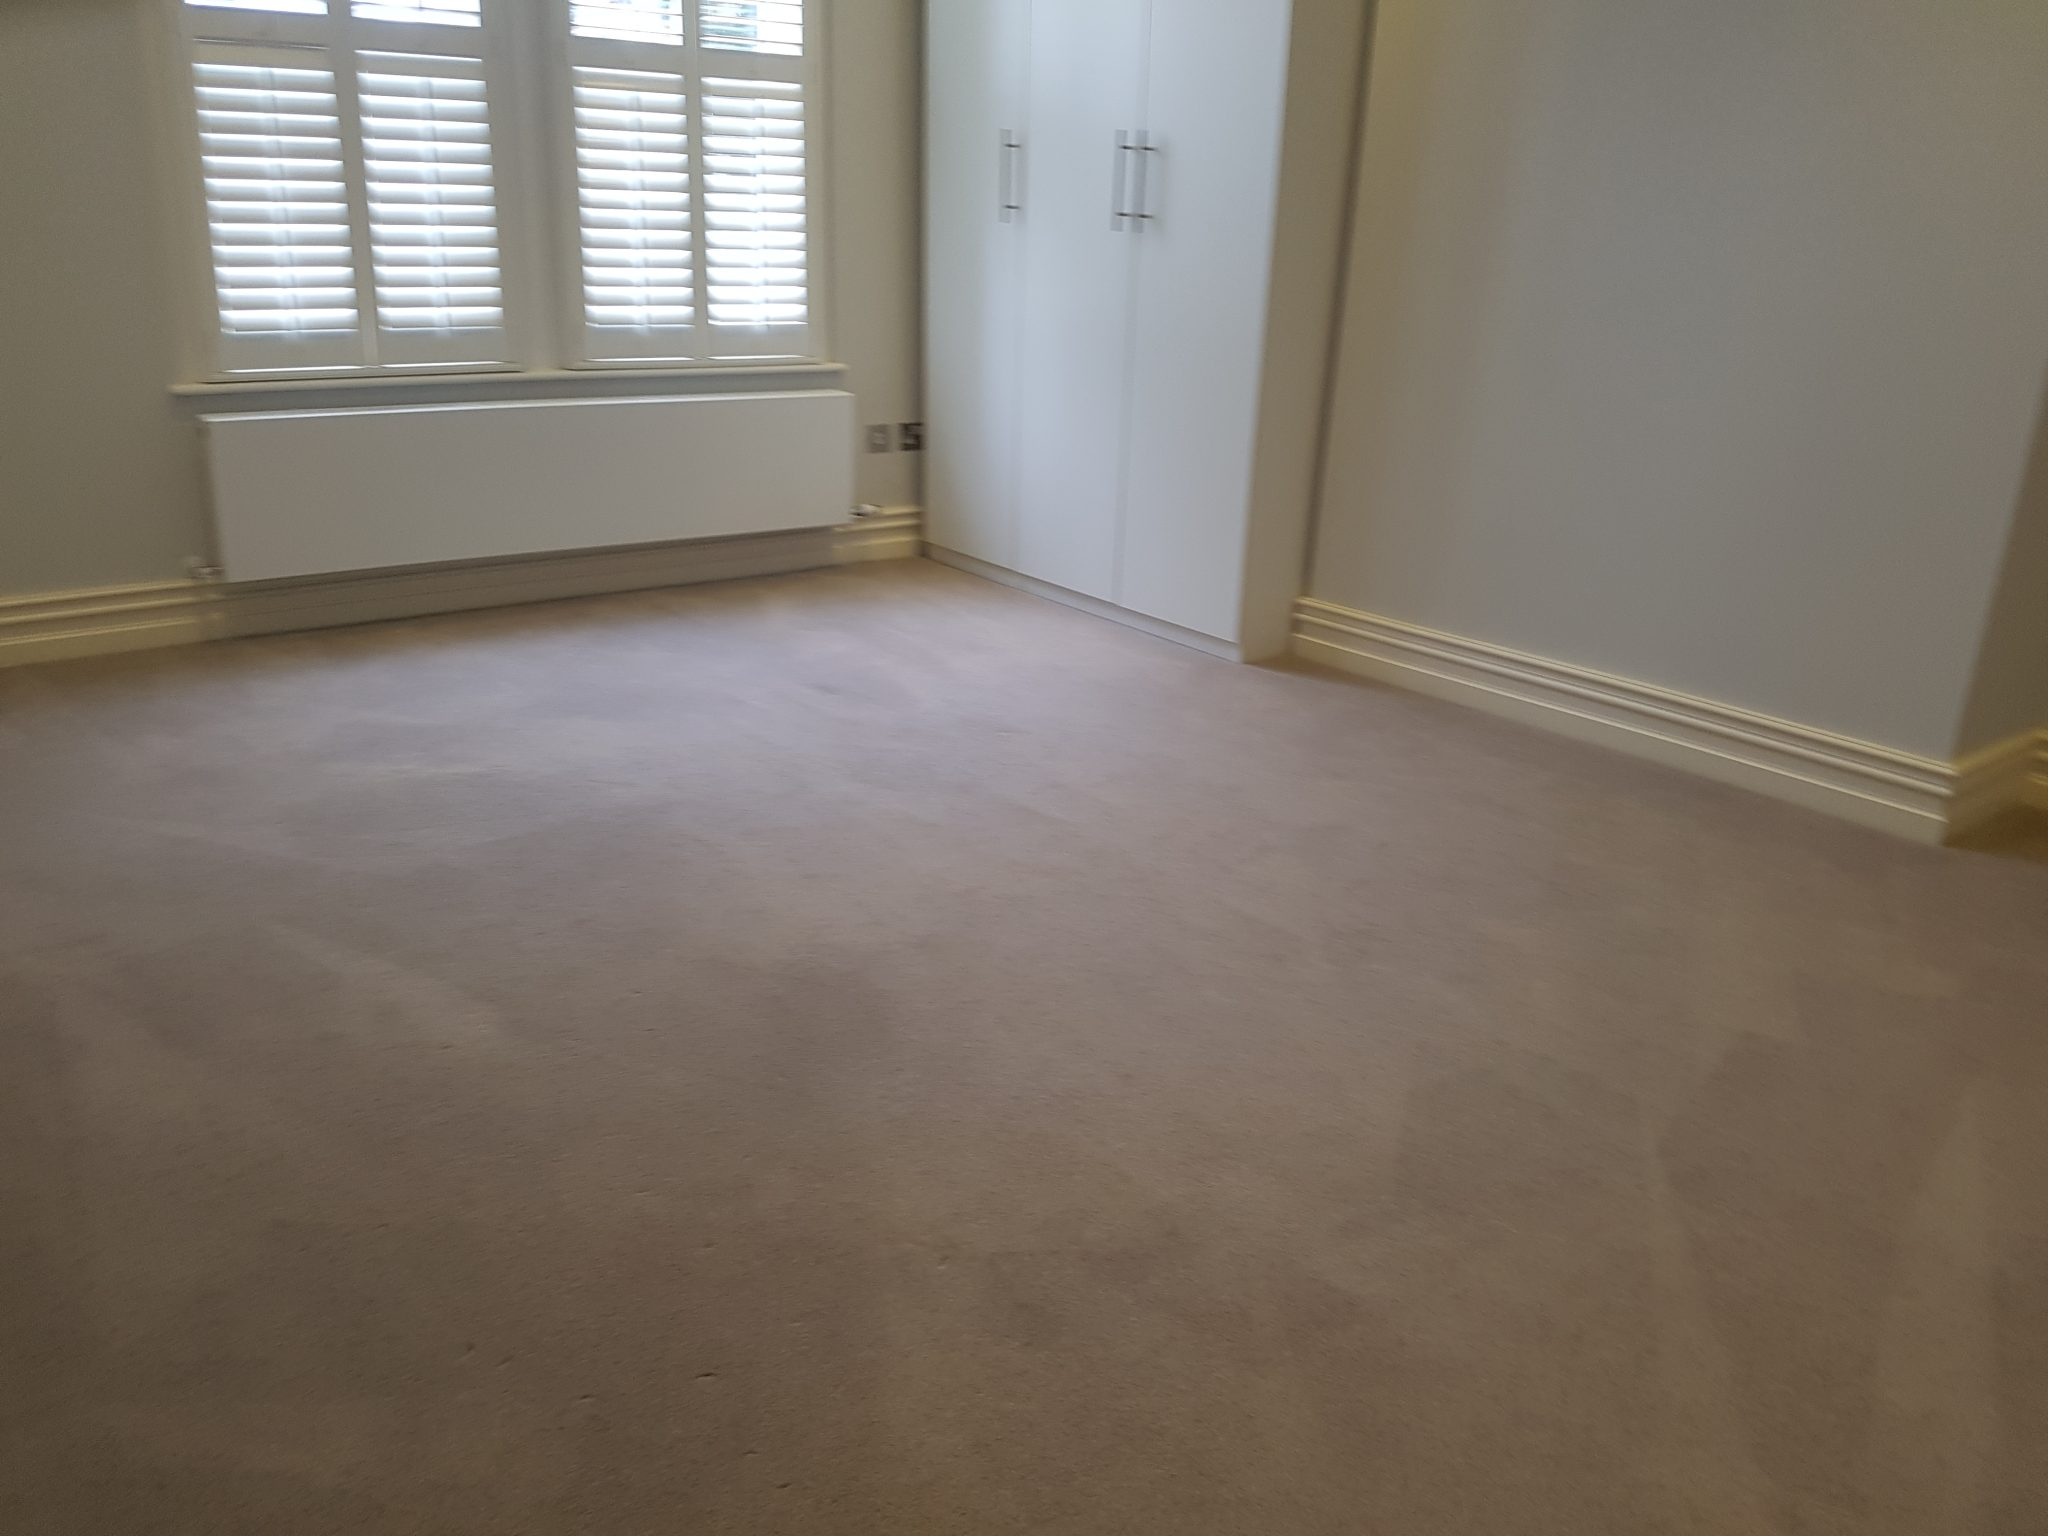 Carpet Cleaning In Thornton Heath Cr7 Postcode Area Mvir